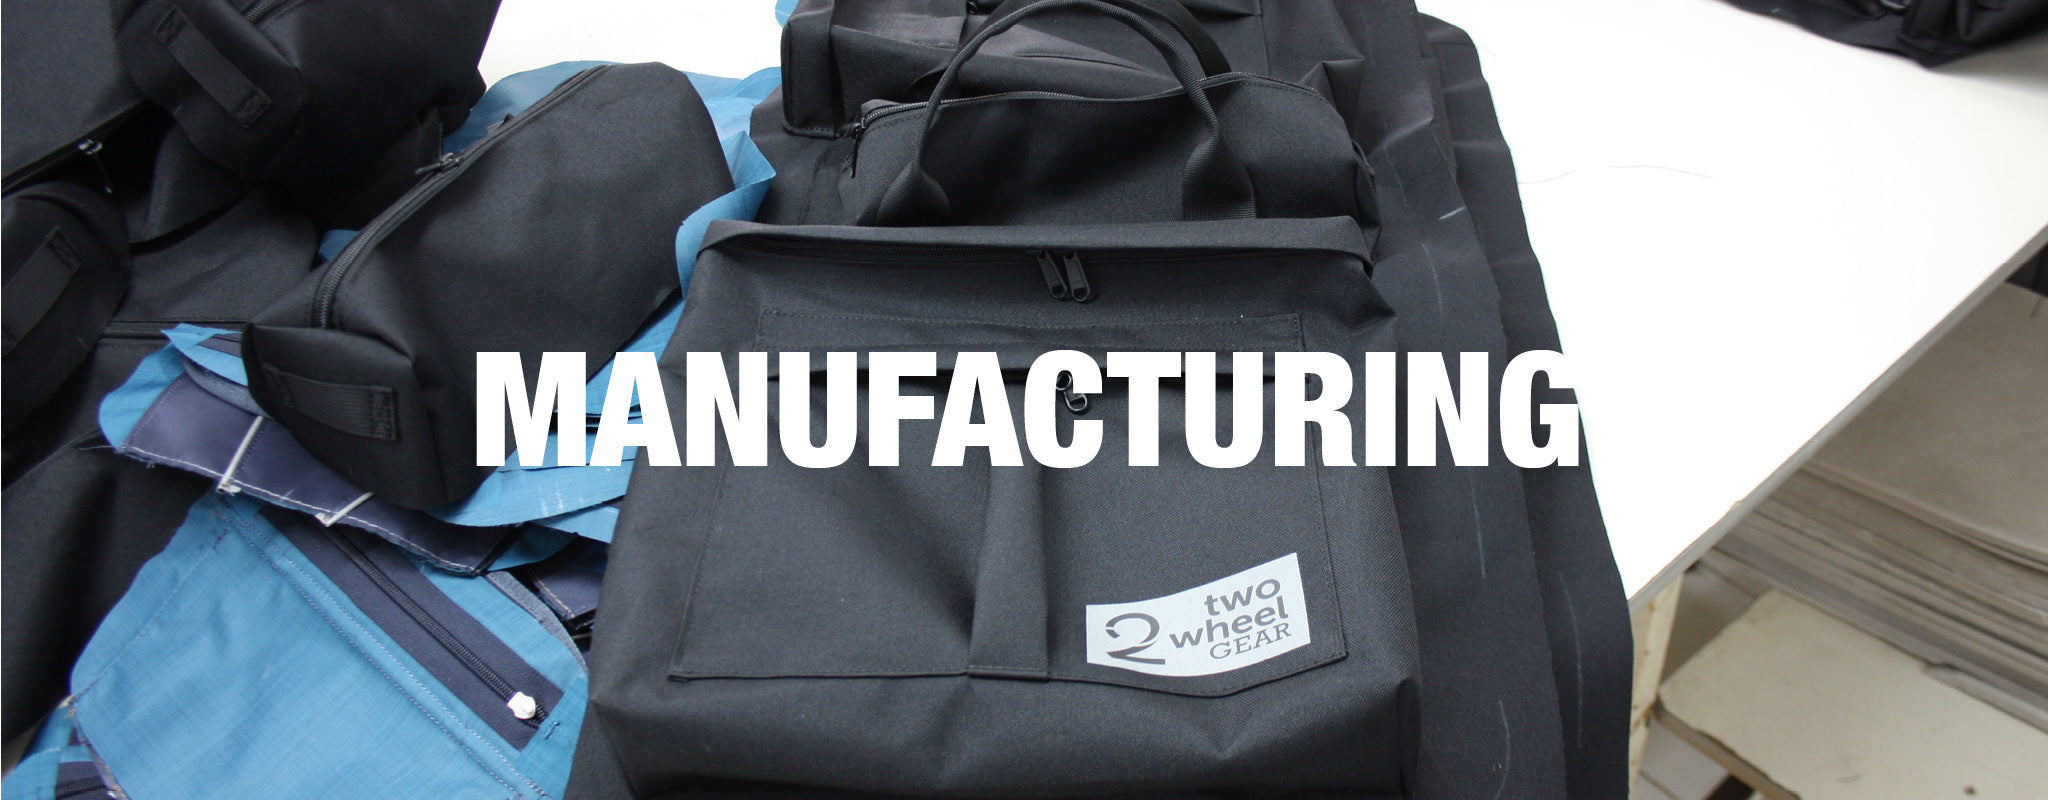 Two Wheel Gear - Manufacturing